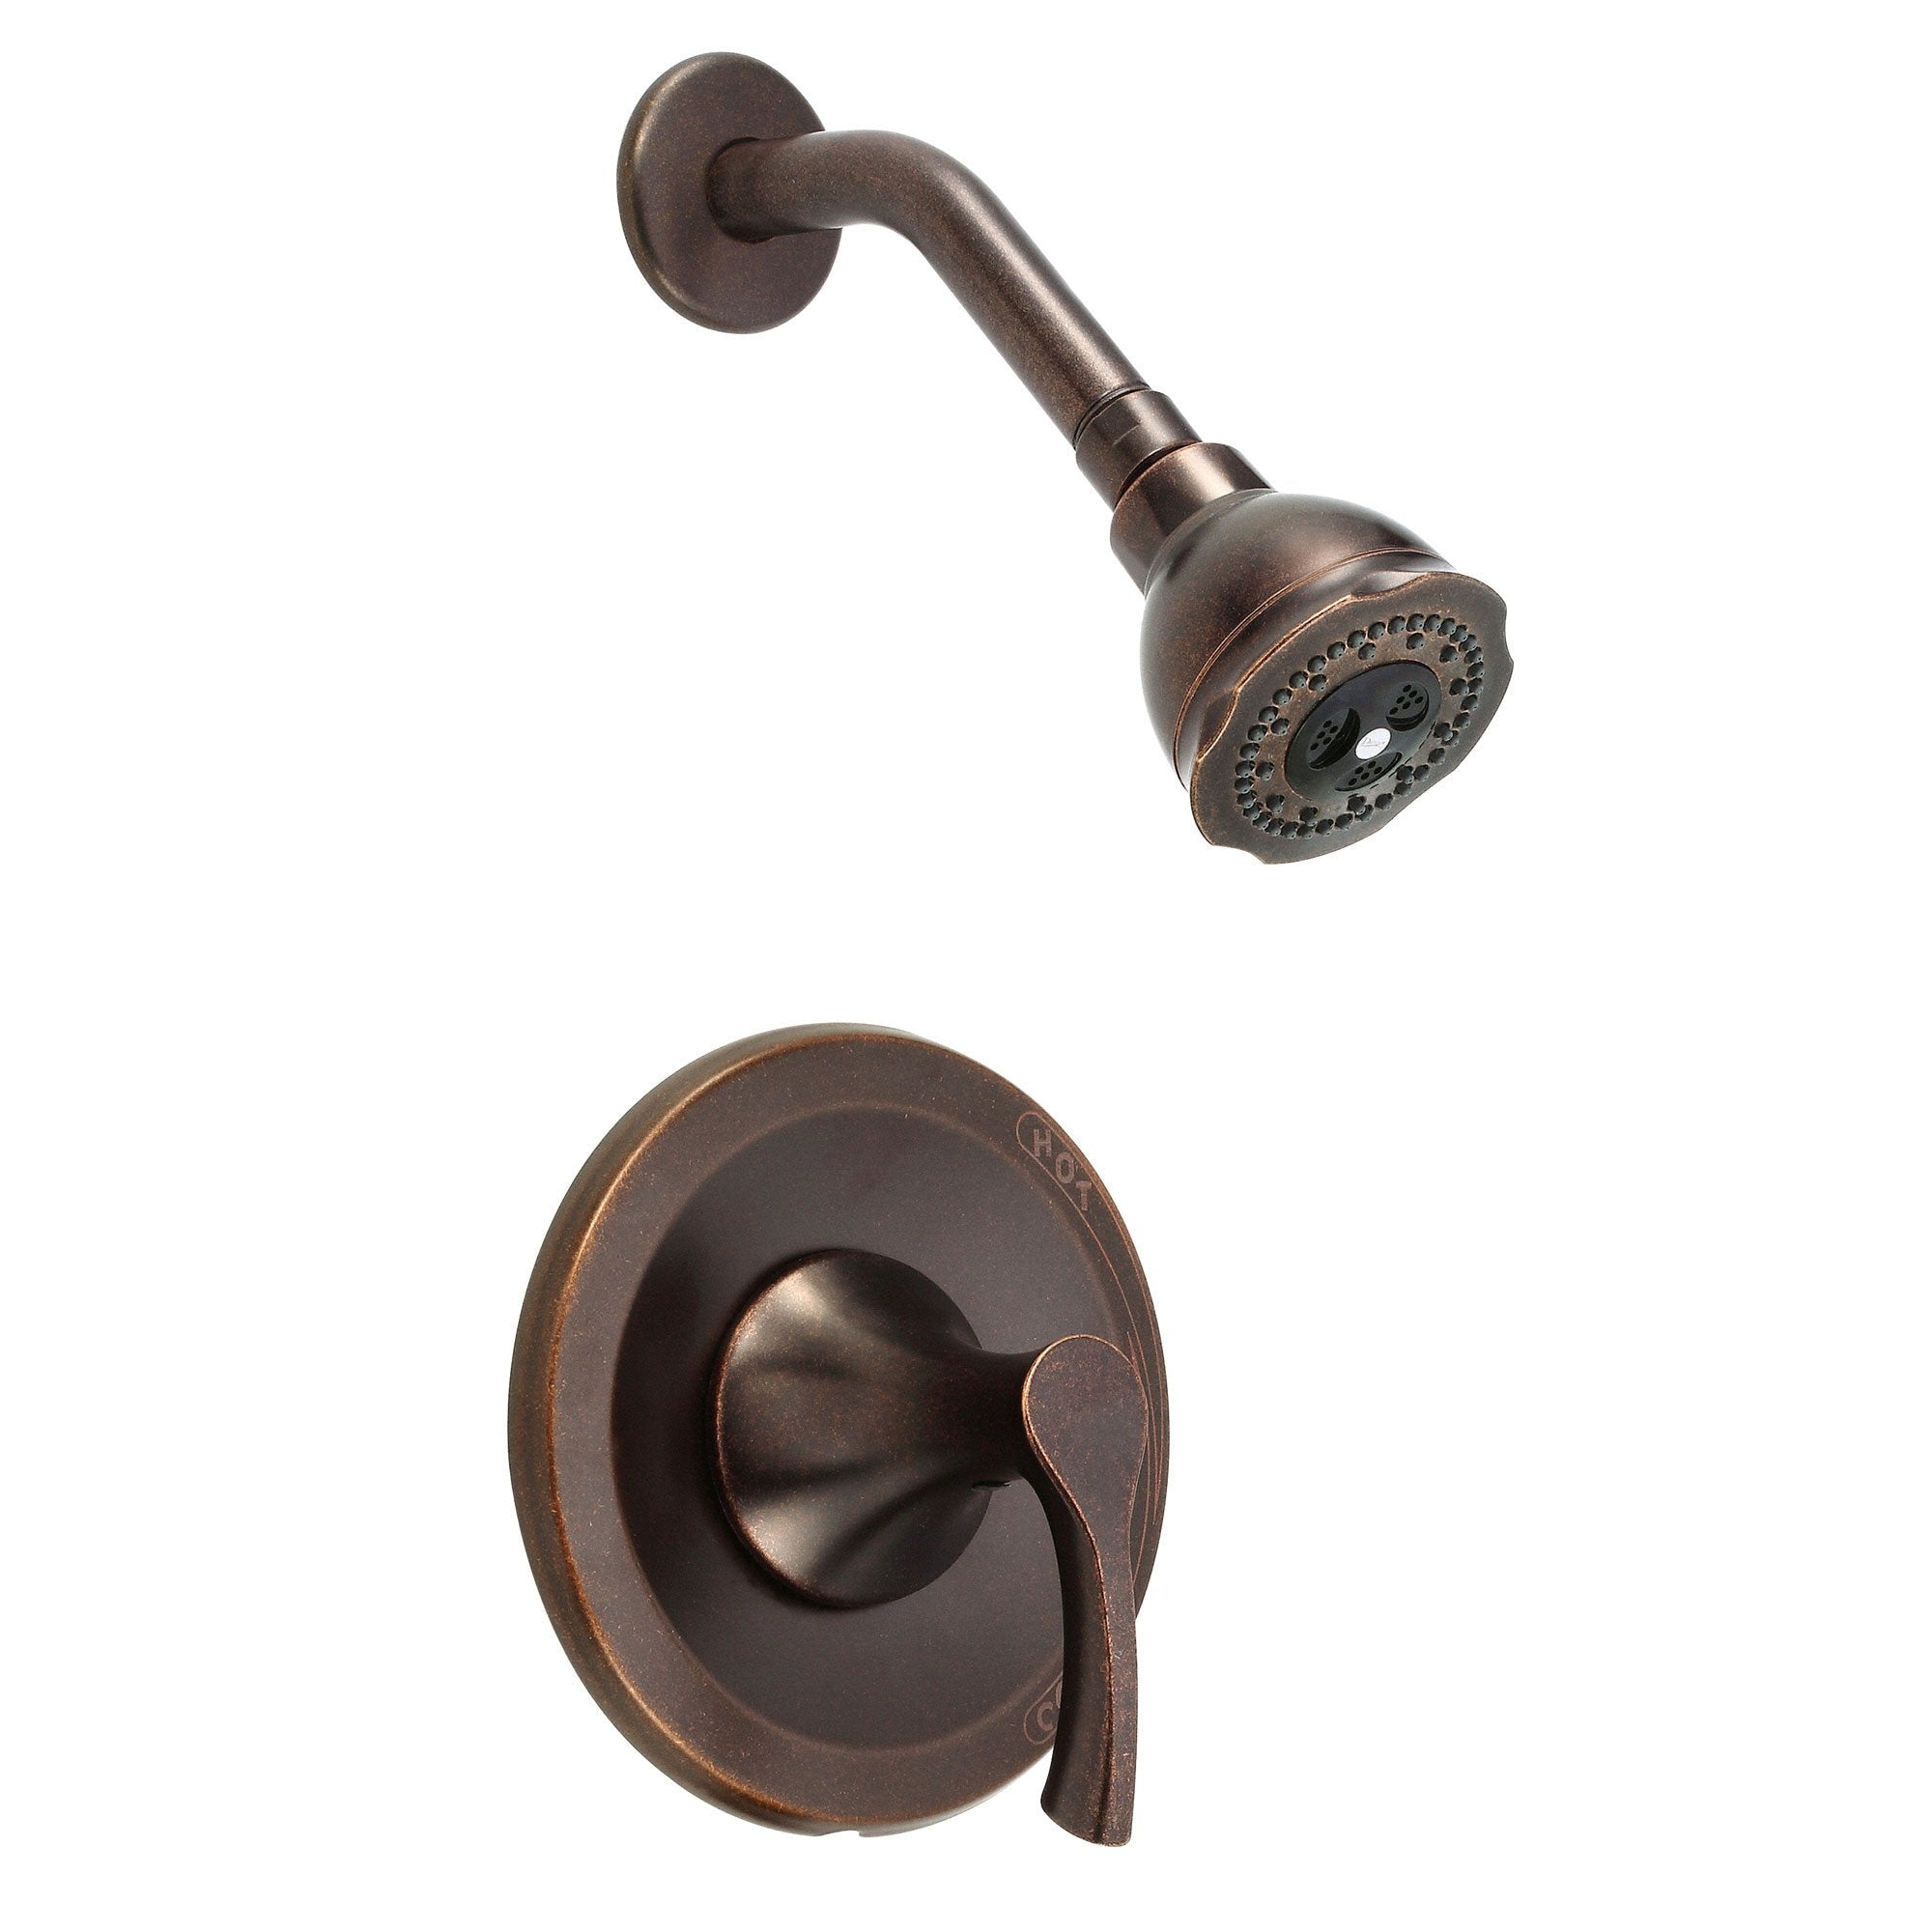 Danze Antioch Tumbled Bronze Single Handle Pressure Balance Shower Only Faucet INCLUDES Rough-in Valve